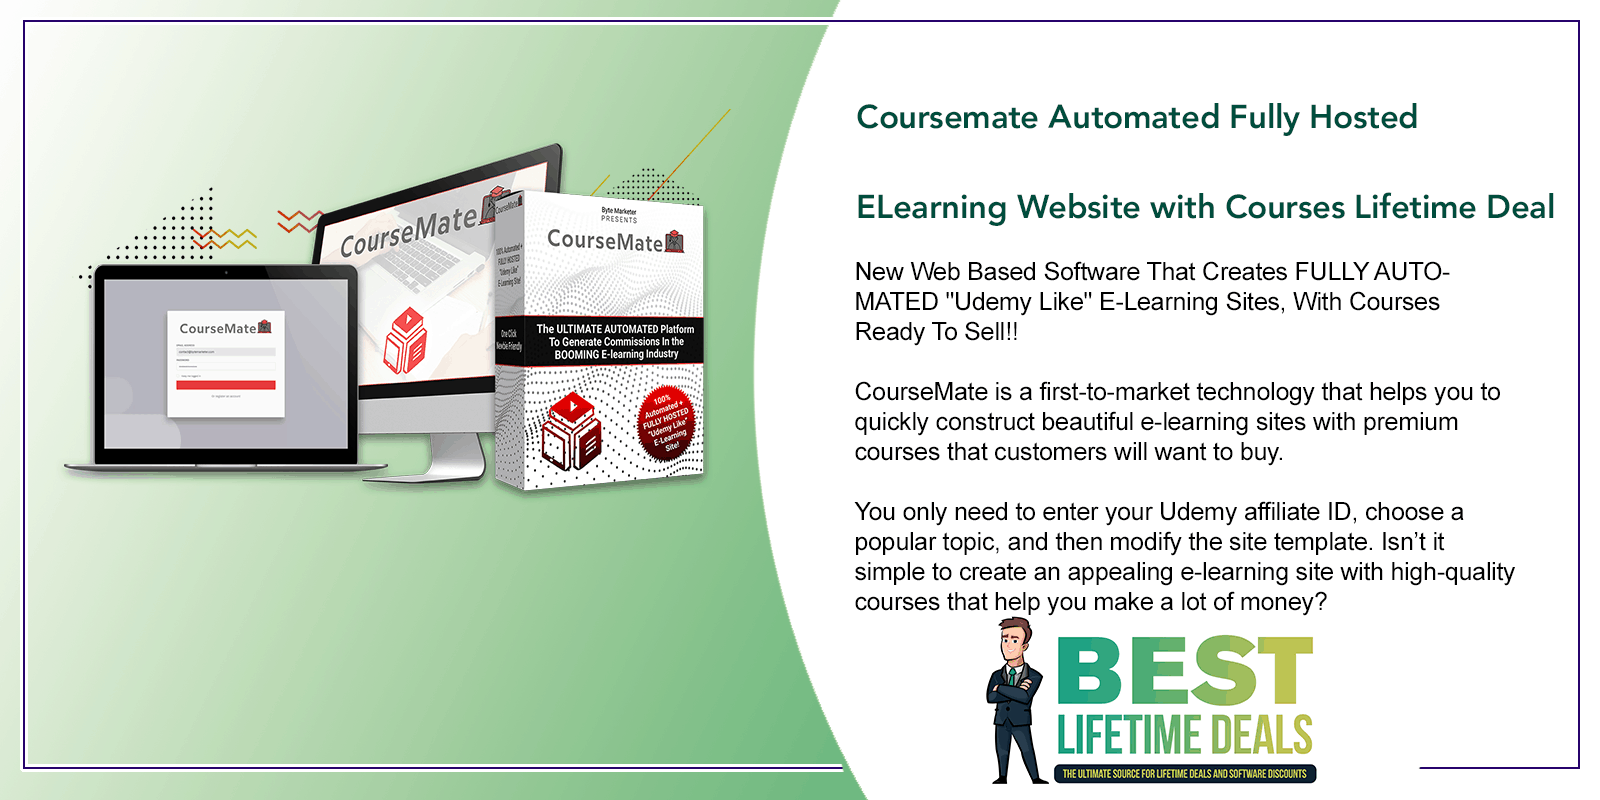 Coursemate Automated Fully Hosted ELearning Website Featured Image